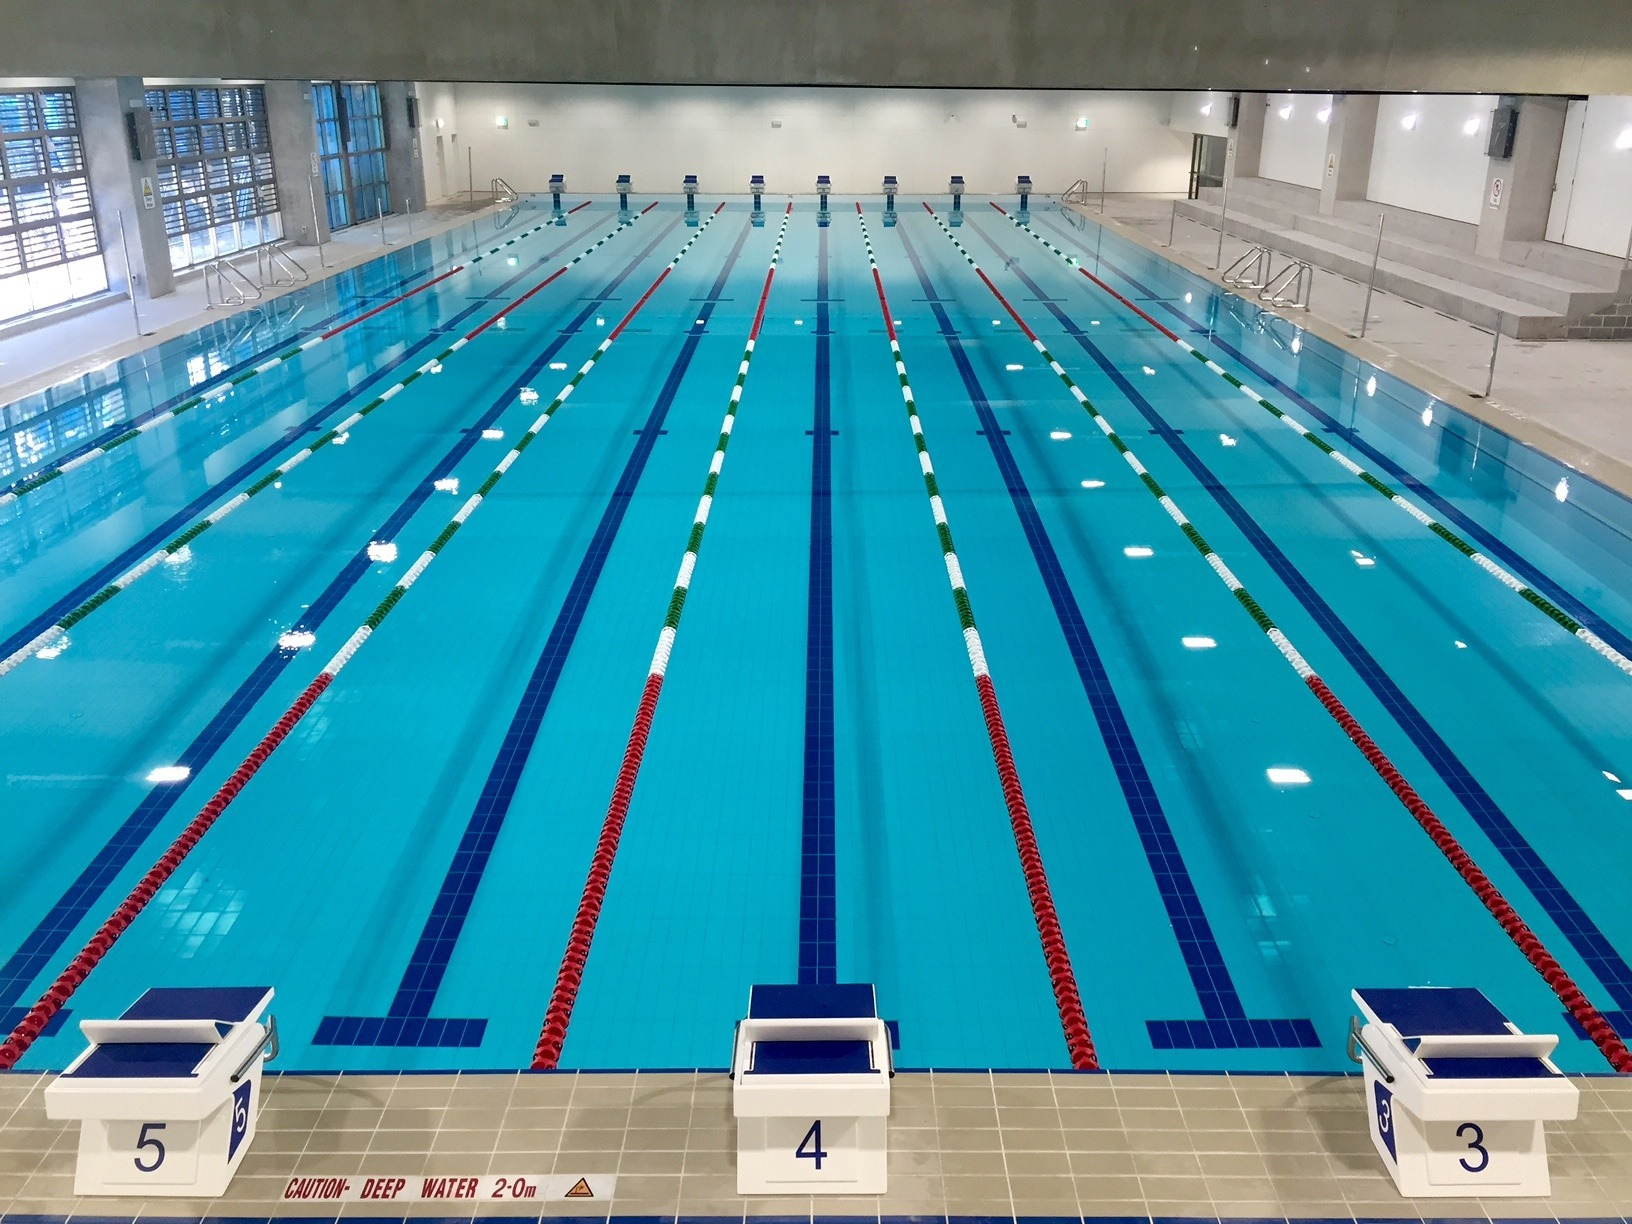 Cutting edge 50m pool opens at trinity grammar australia - University of birmingham swimming pool ...